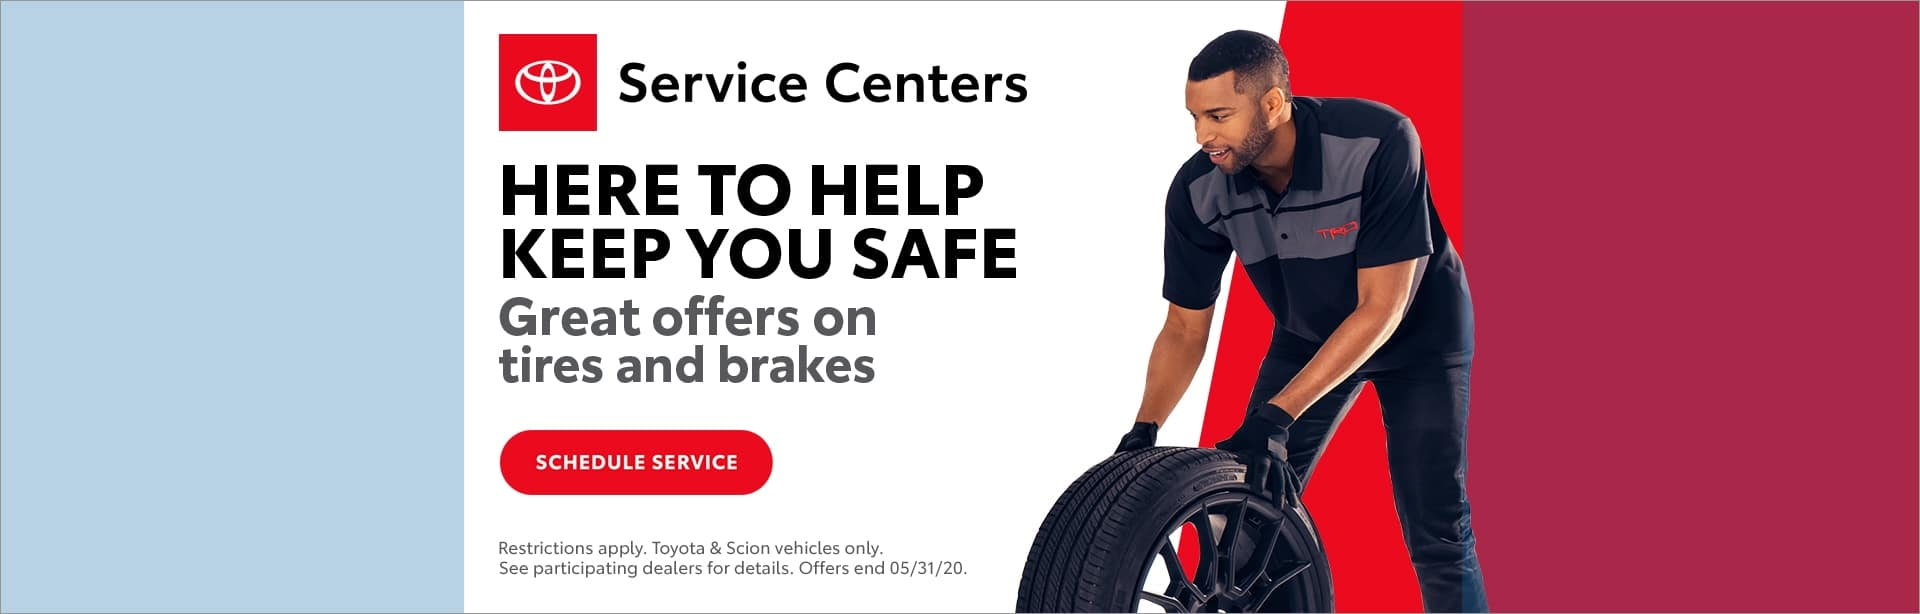 great_offers_on _tires_and_brakes